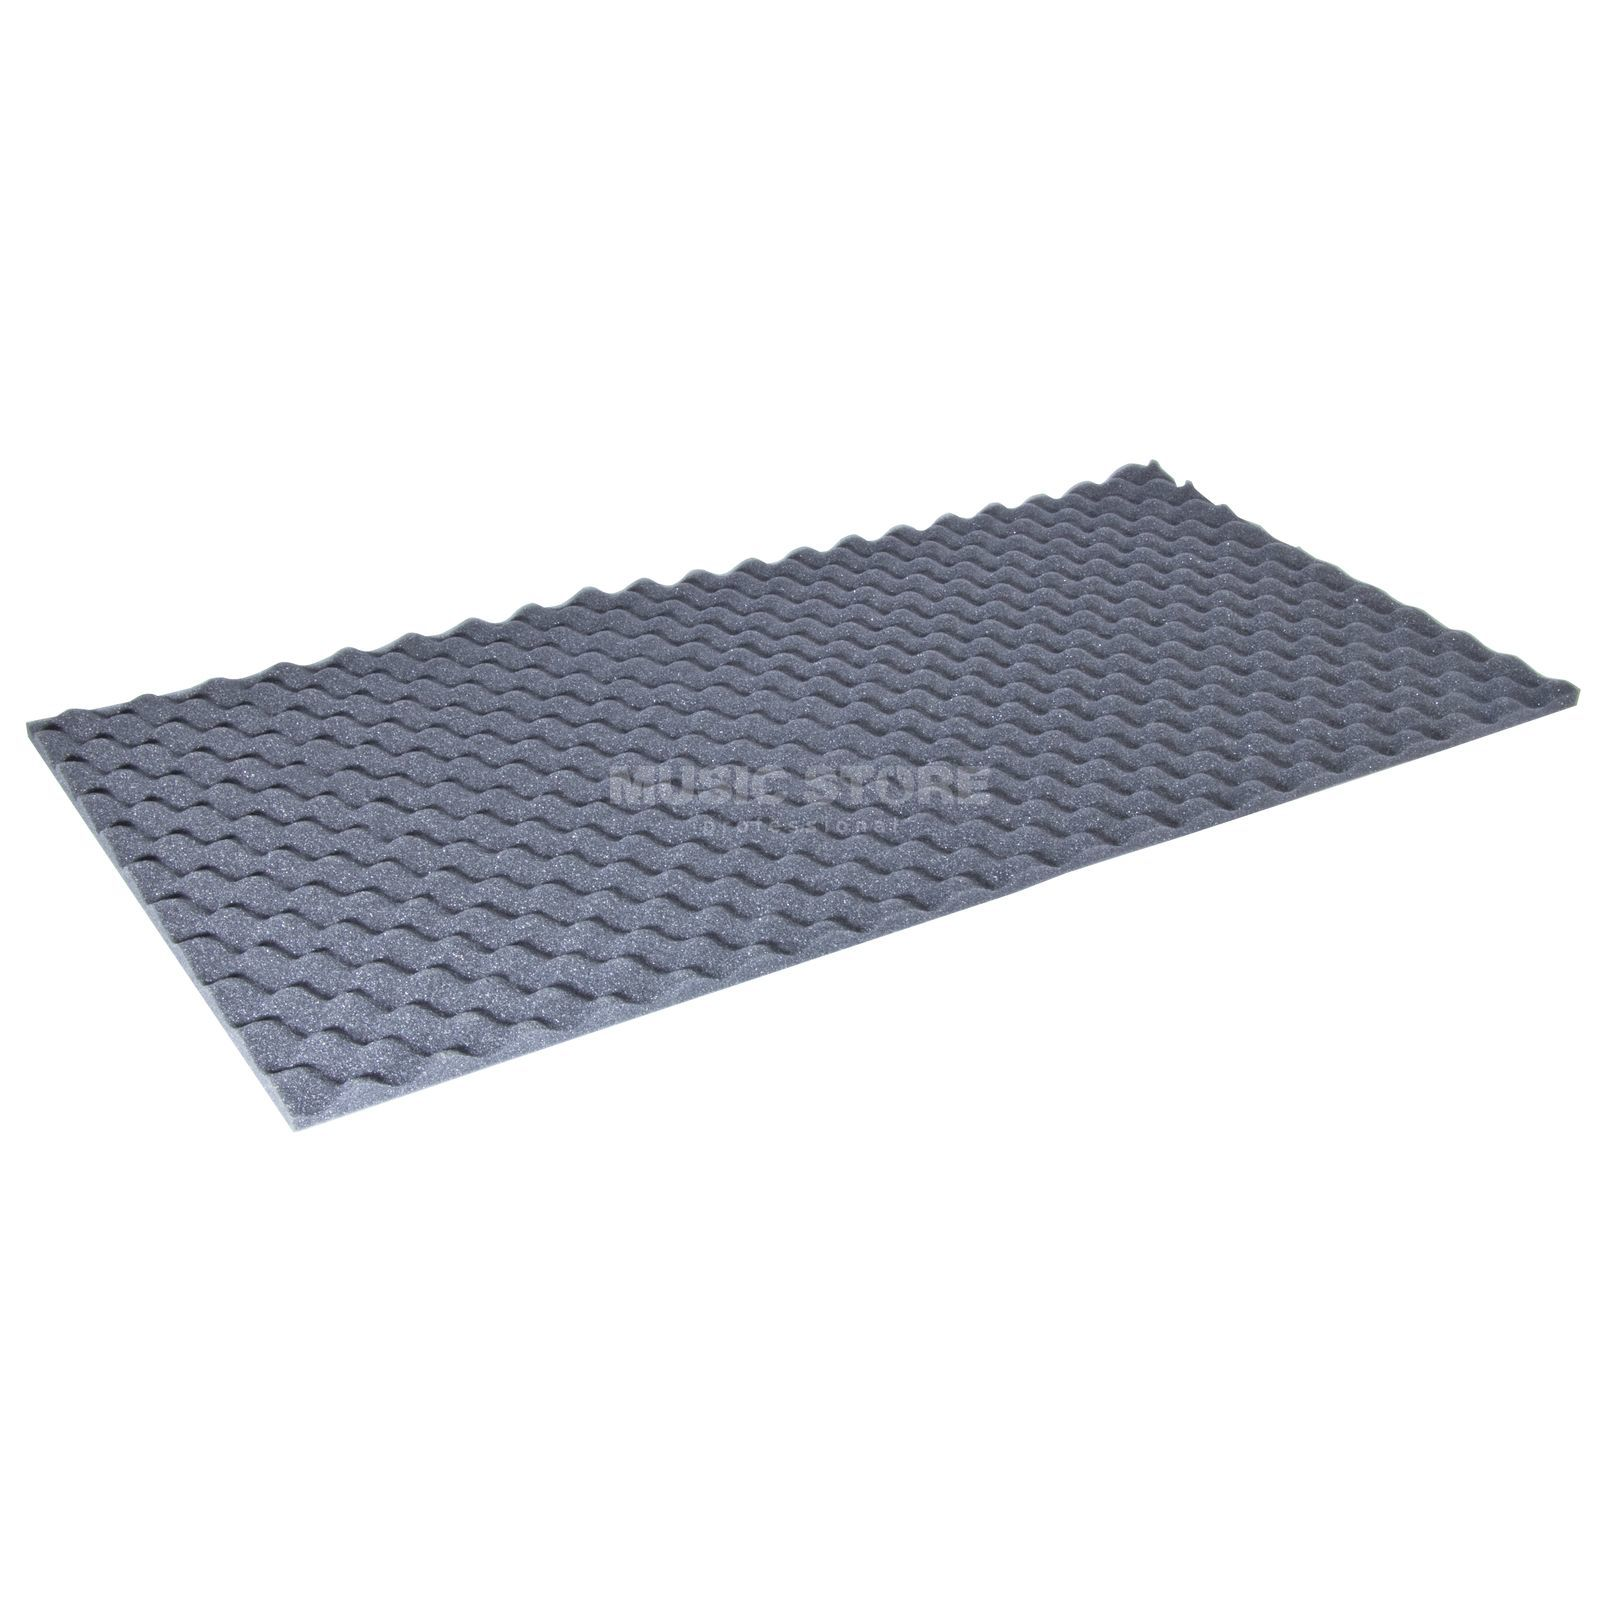 MUSIC STORE Noppo AbsorberFoam, anthr. 34x - 50x100 cm, 20mm stark Produktbillede